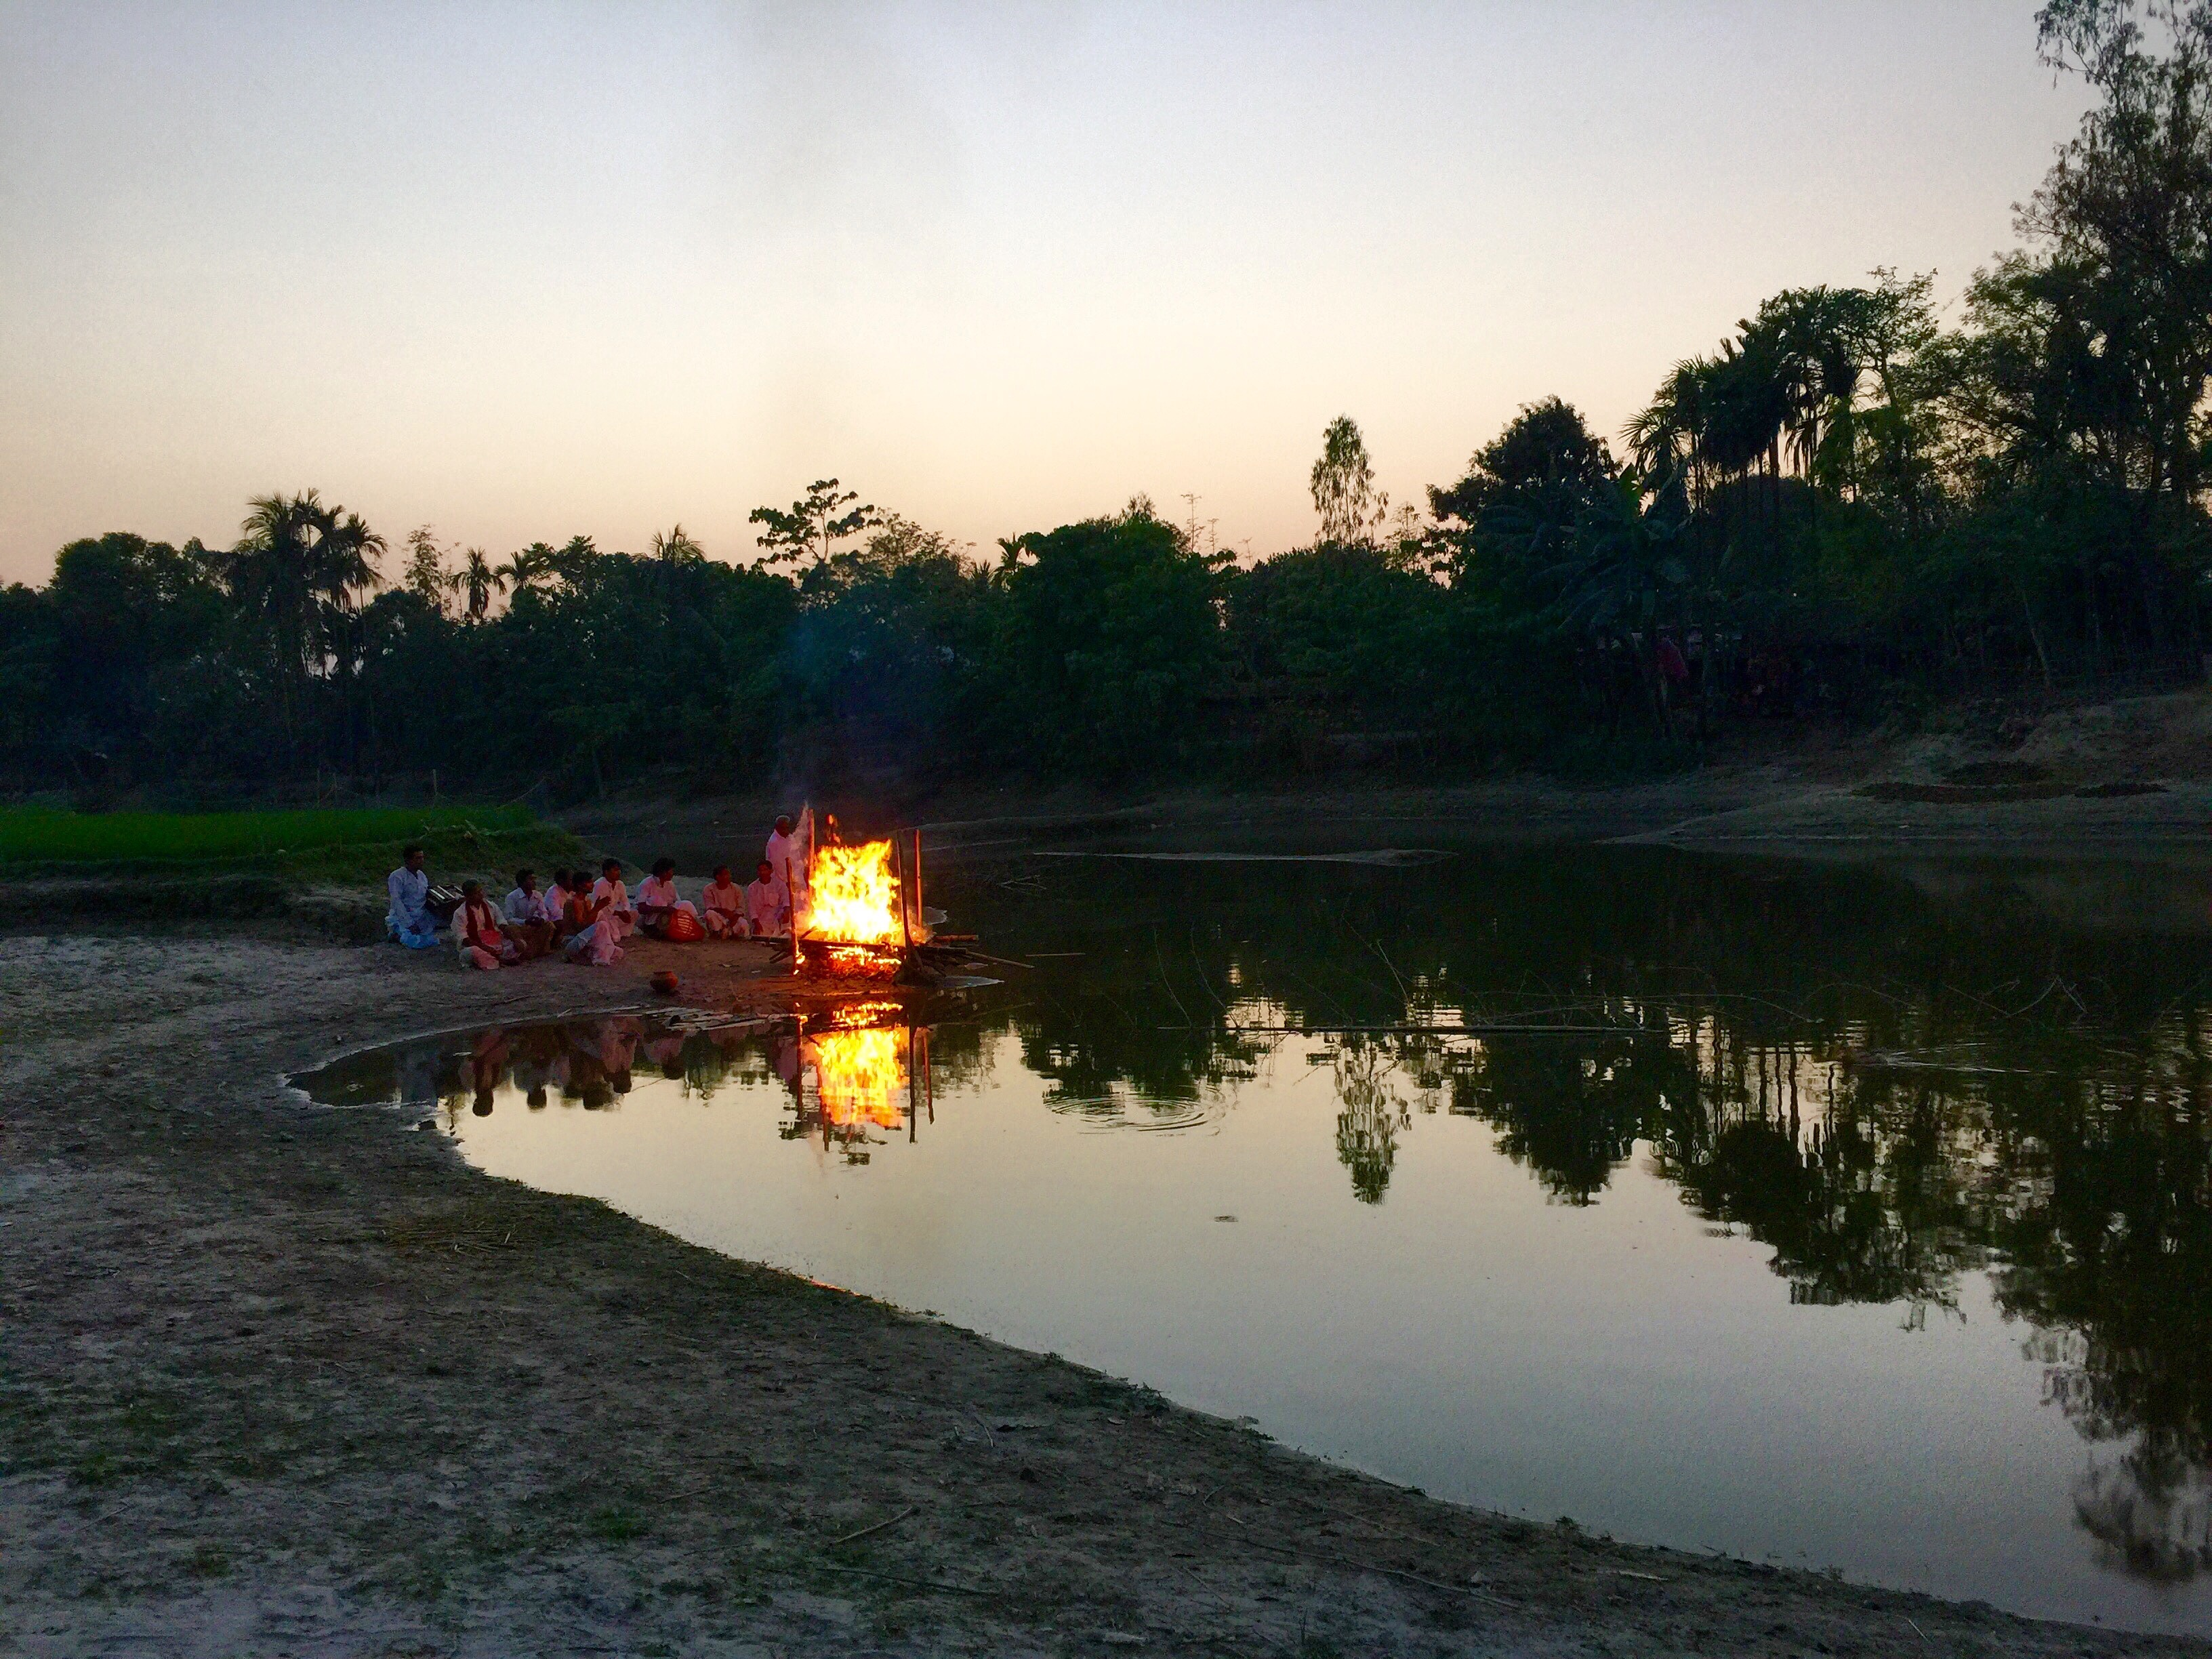 The cremation during the sun set